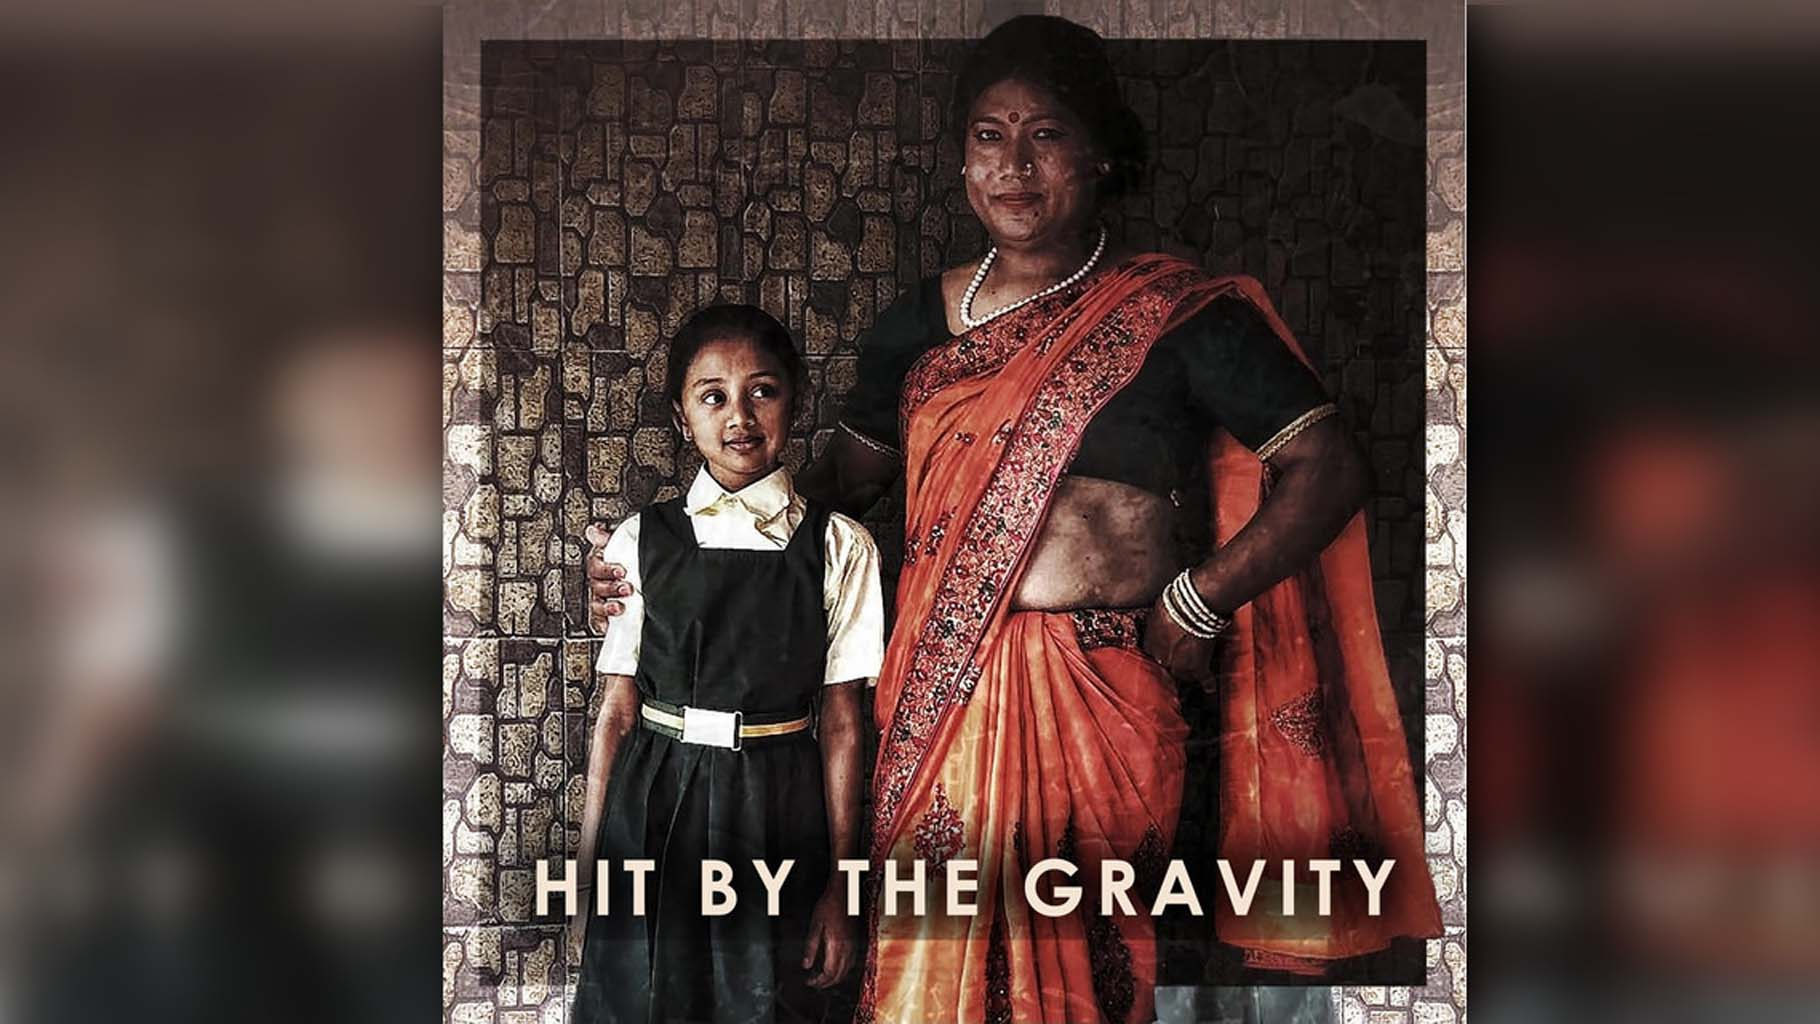 The indies awards, Music video, Marshall tyagi, Hit by the gravity